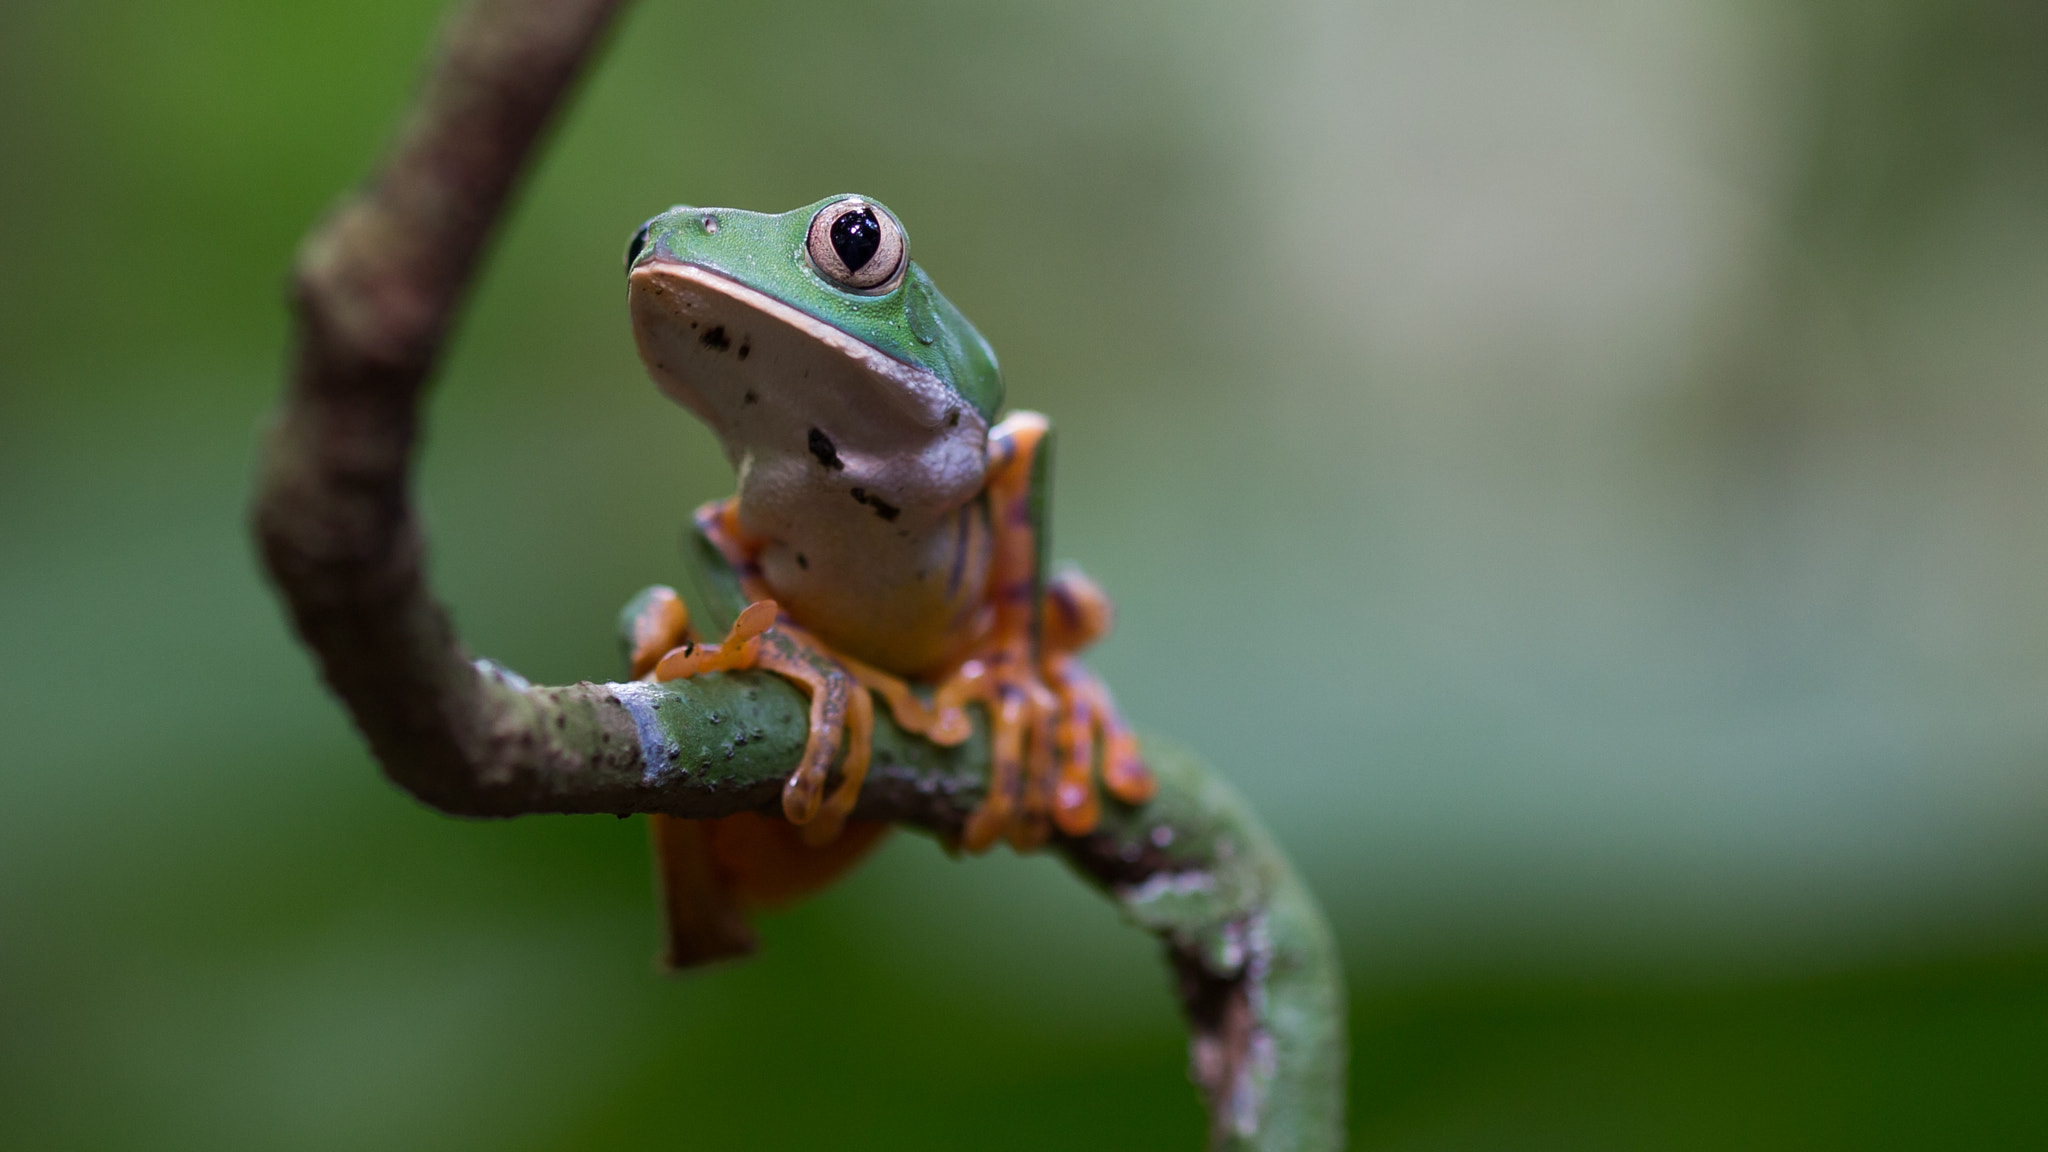 Photograph Frog by Rita Caluori on 500px